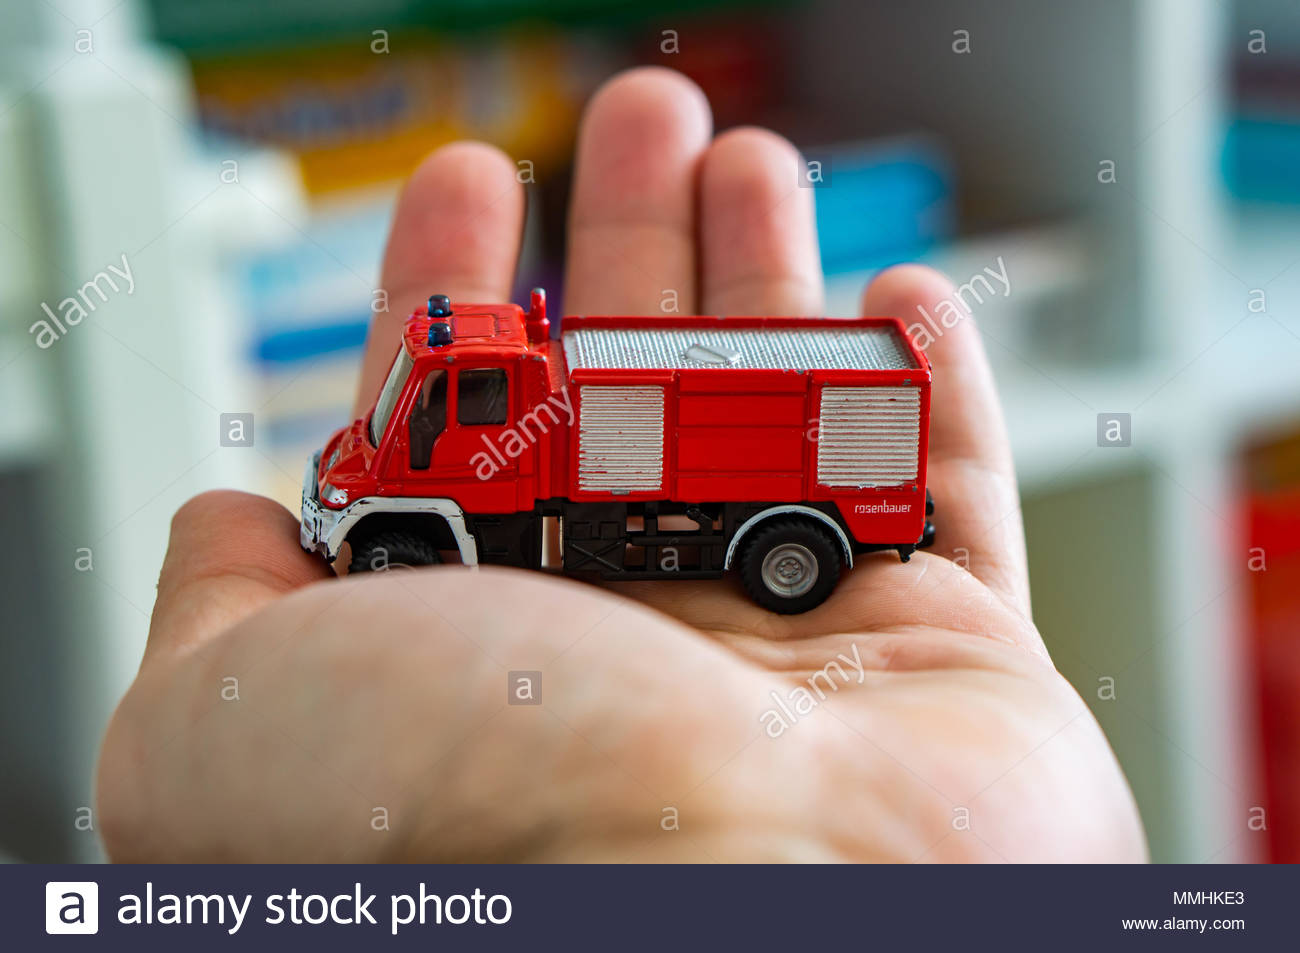 Red Siku model toy fire truck on a open hand - Stock Image